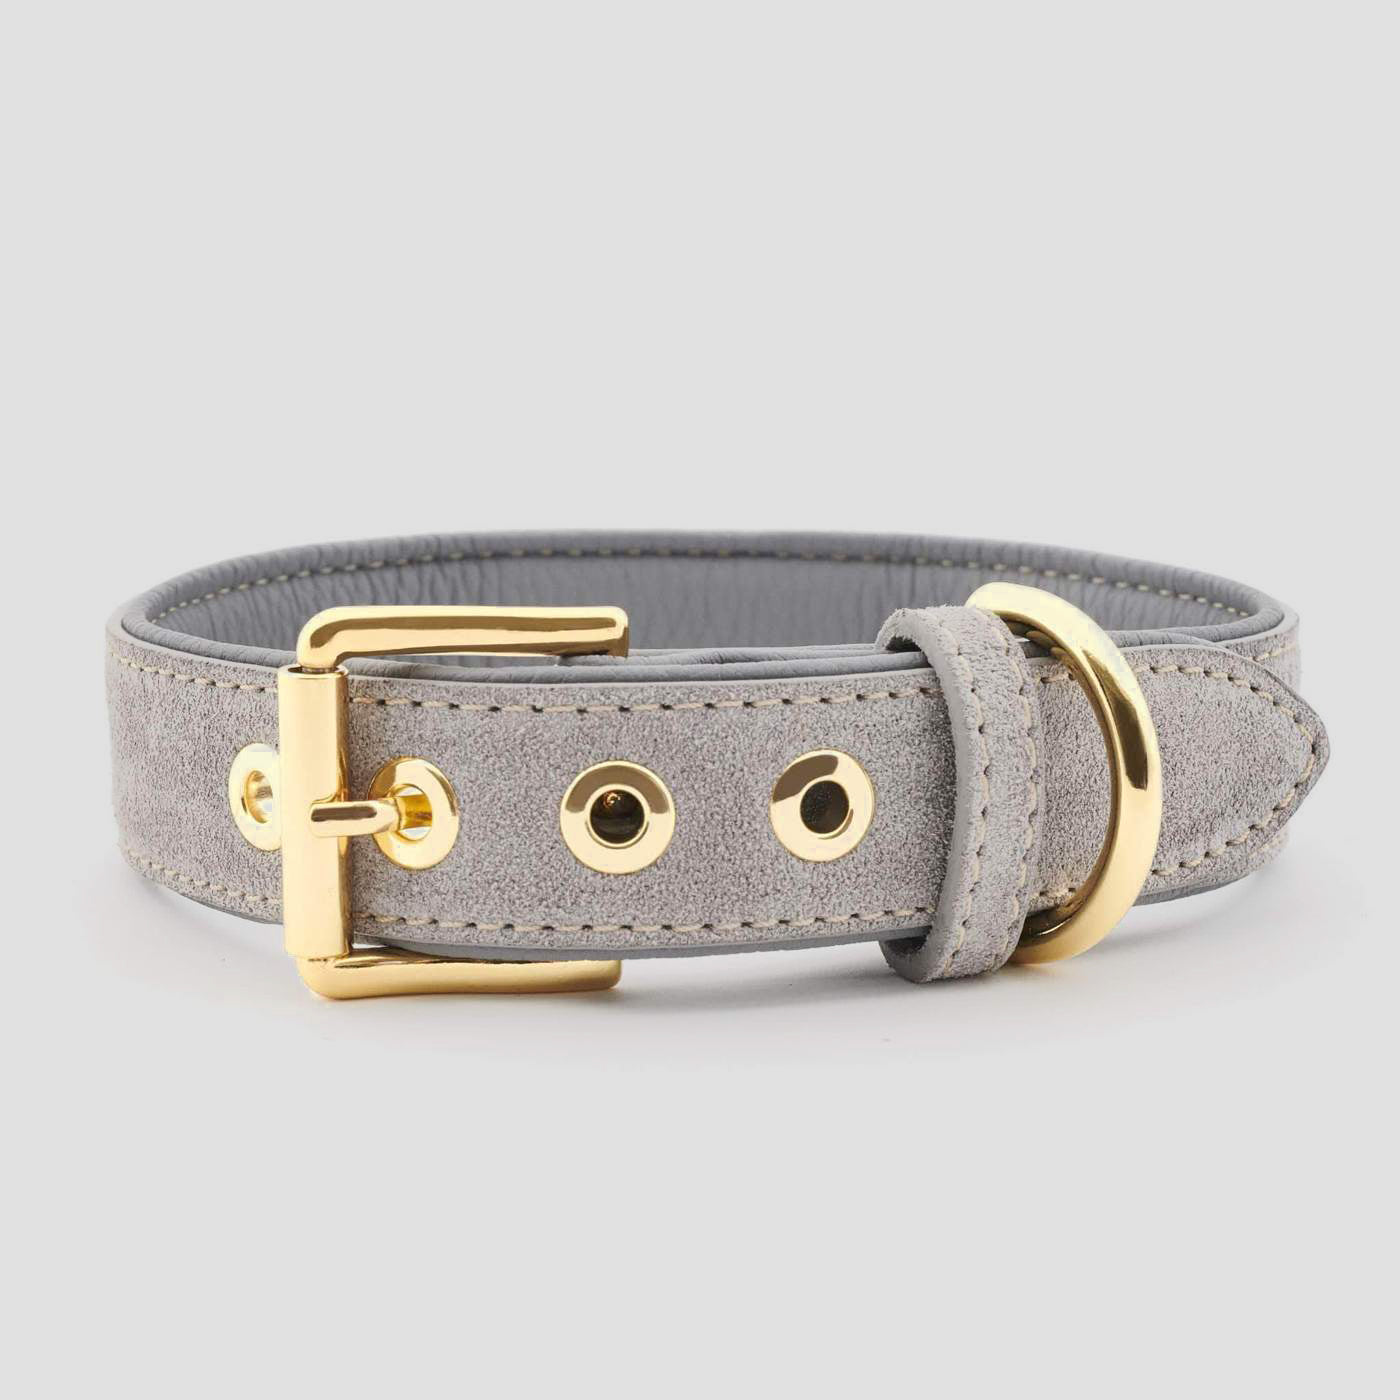 William Walker Leather Dog Collar - Sea Salt